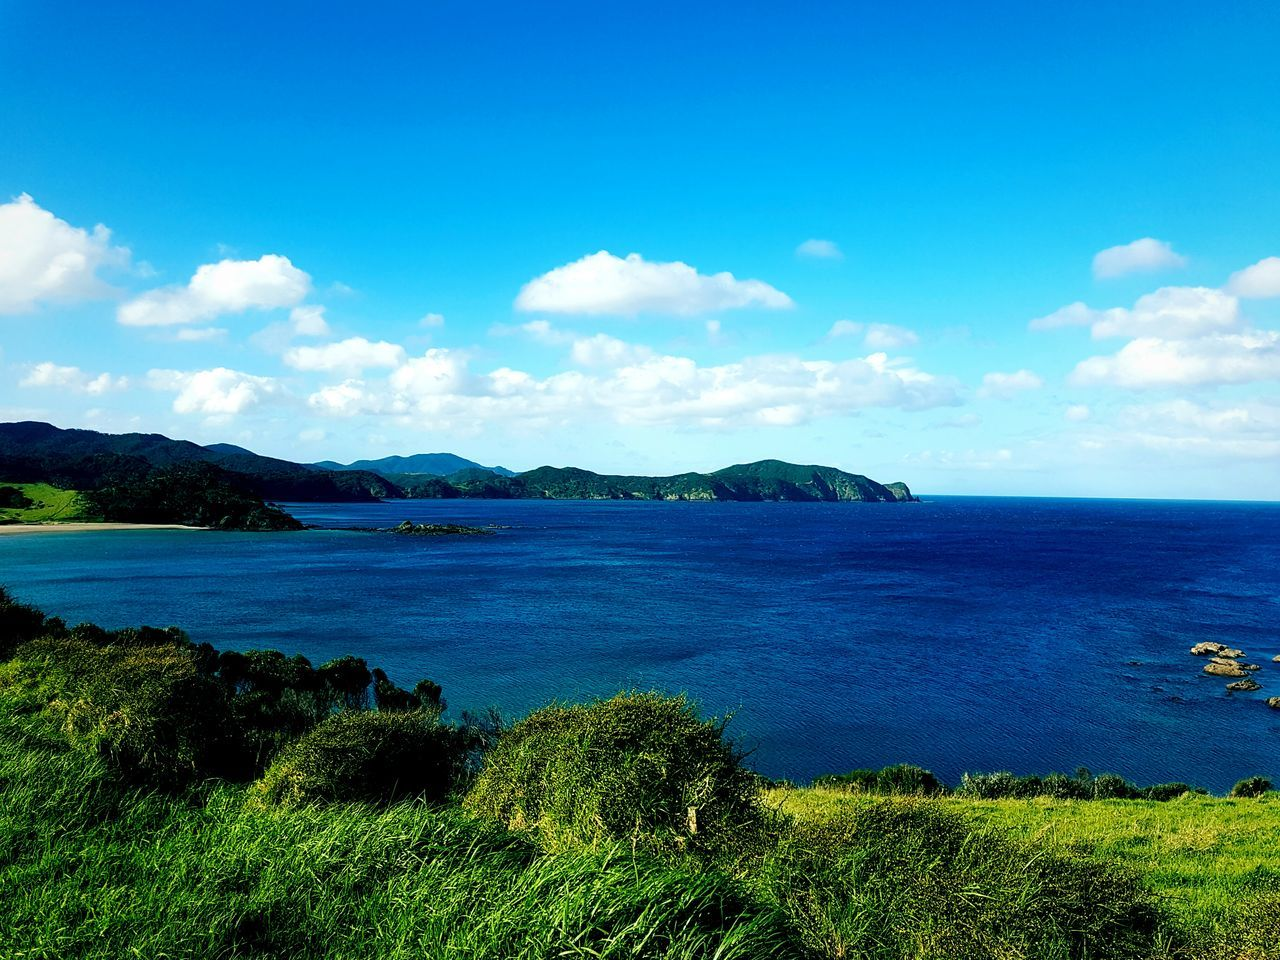 Looking over Rawhiri Beautiful Nature Blue Water Scenics Tranquility Sky Mountain Sea Nature Calm Day Mountain Range Outdoors Seascape Cloud - Sky Beauty In Nature Beachphotography Grass Clear Sky Horizon Over Water Tranquil Scene Nature Coastline Calm Vacations